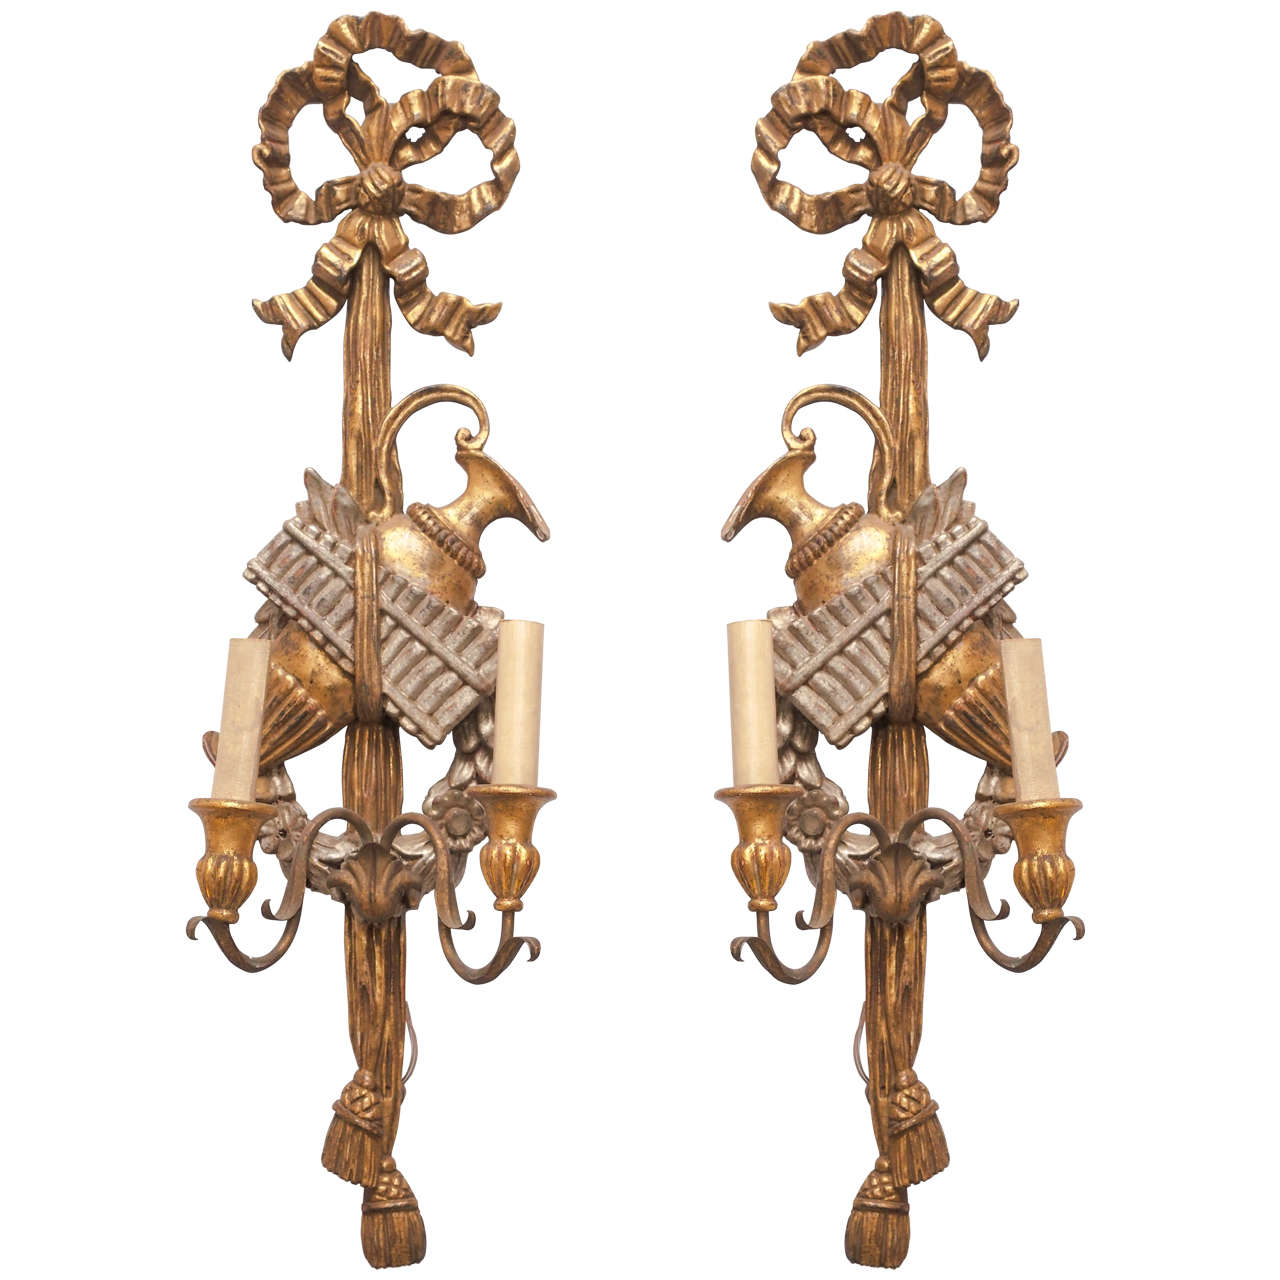 Pair of 19th Century Italian Carved Wood Gilt and Silvered Two-Arm Sconces at 1stdibs